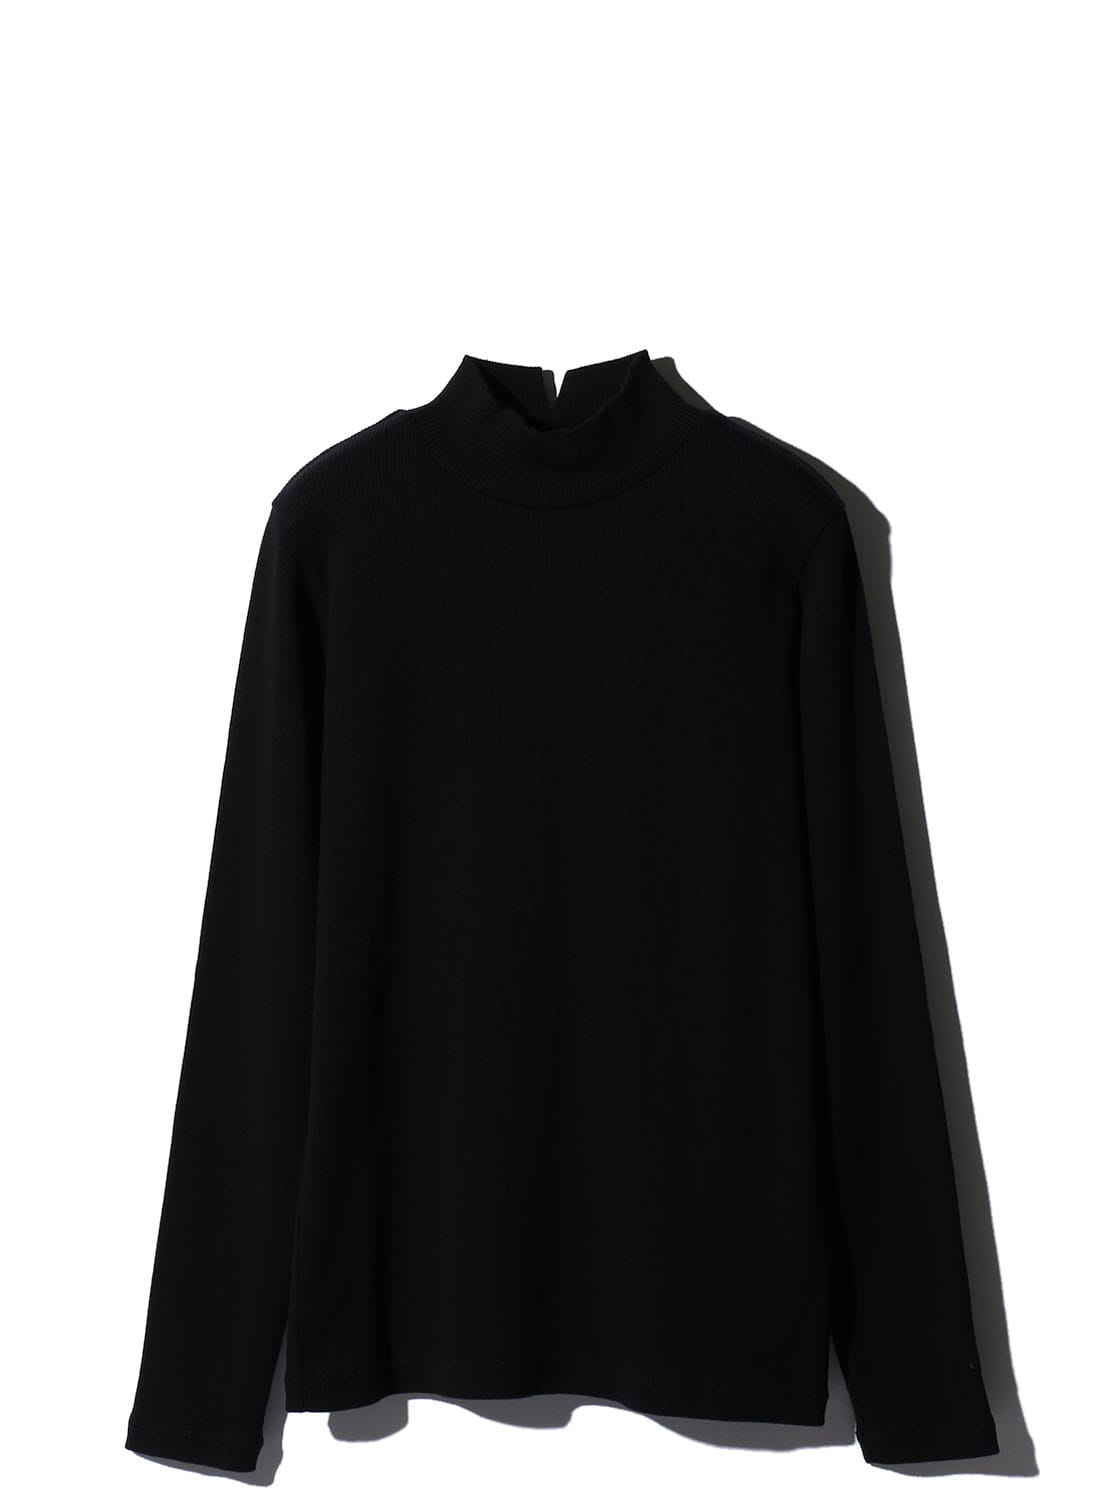 【日本限定】 RIB HIGHNECK LONG-T